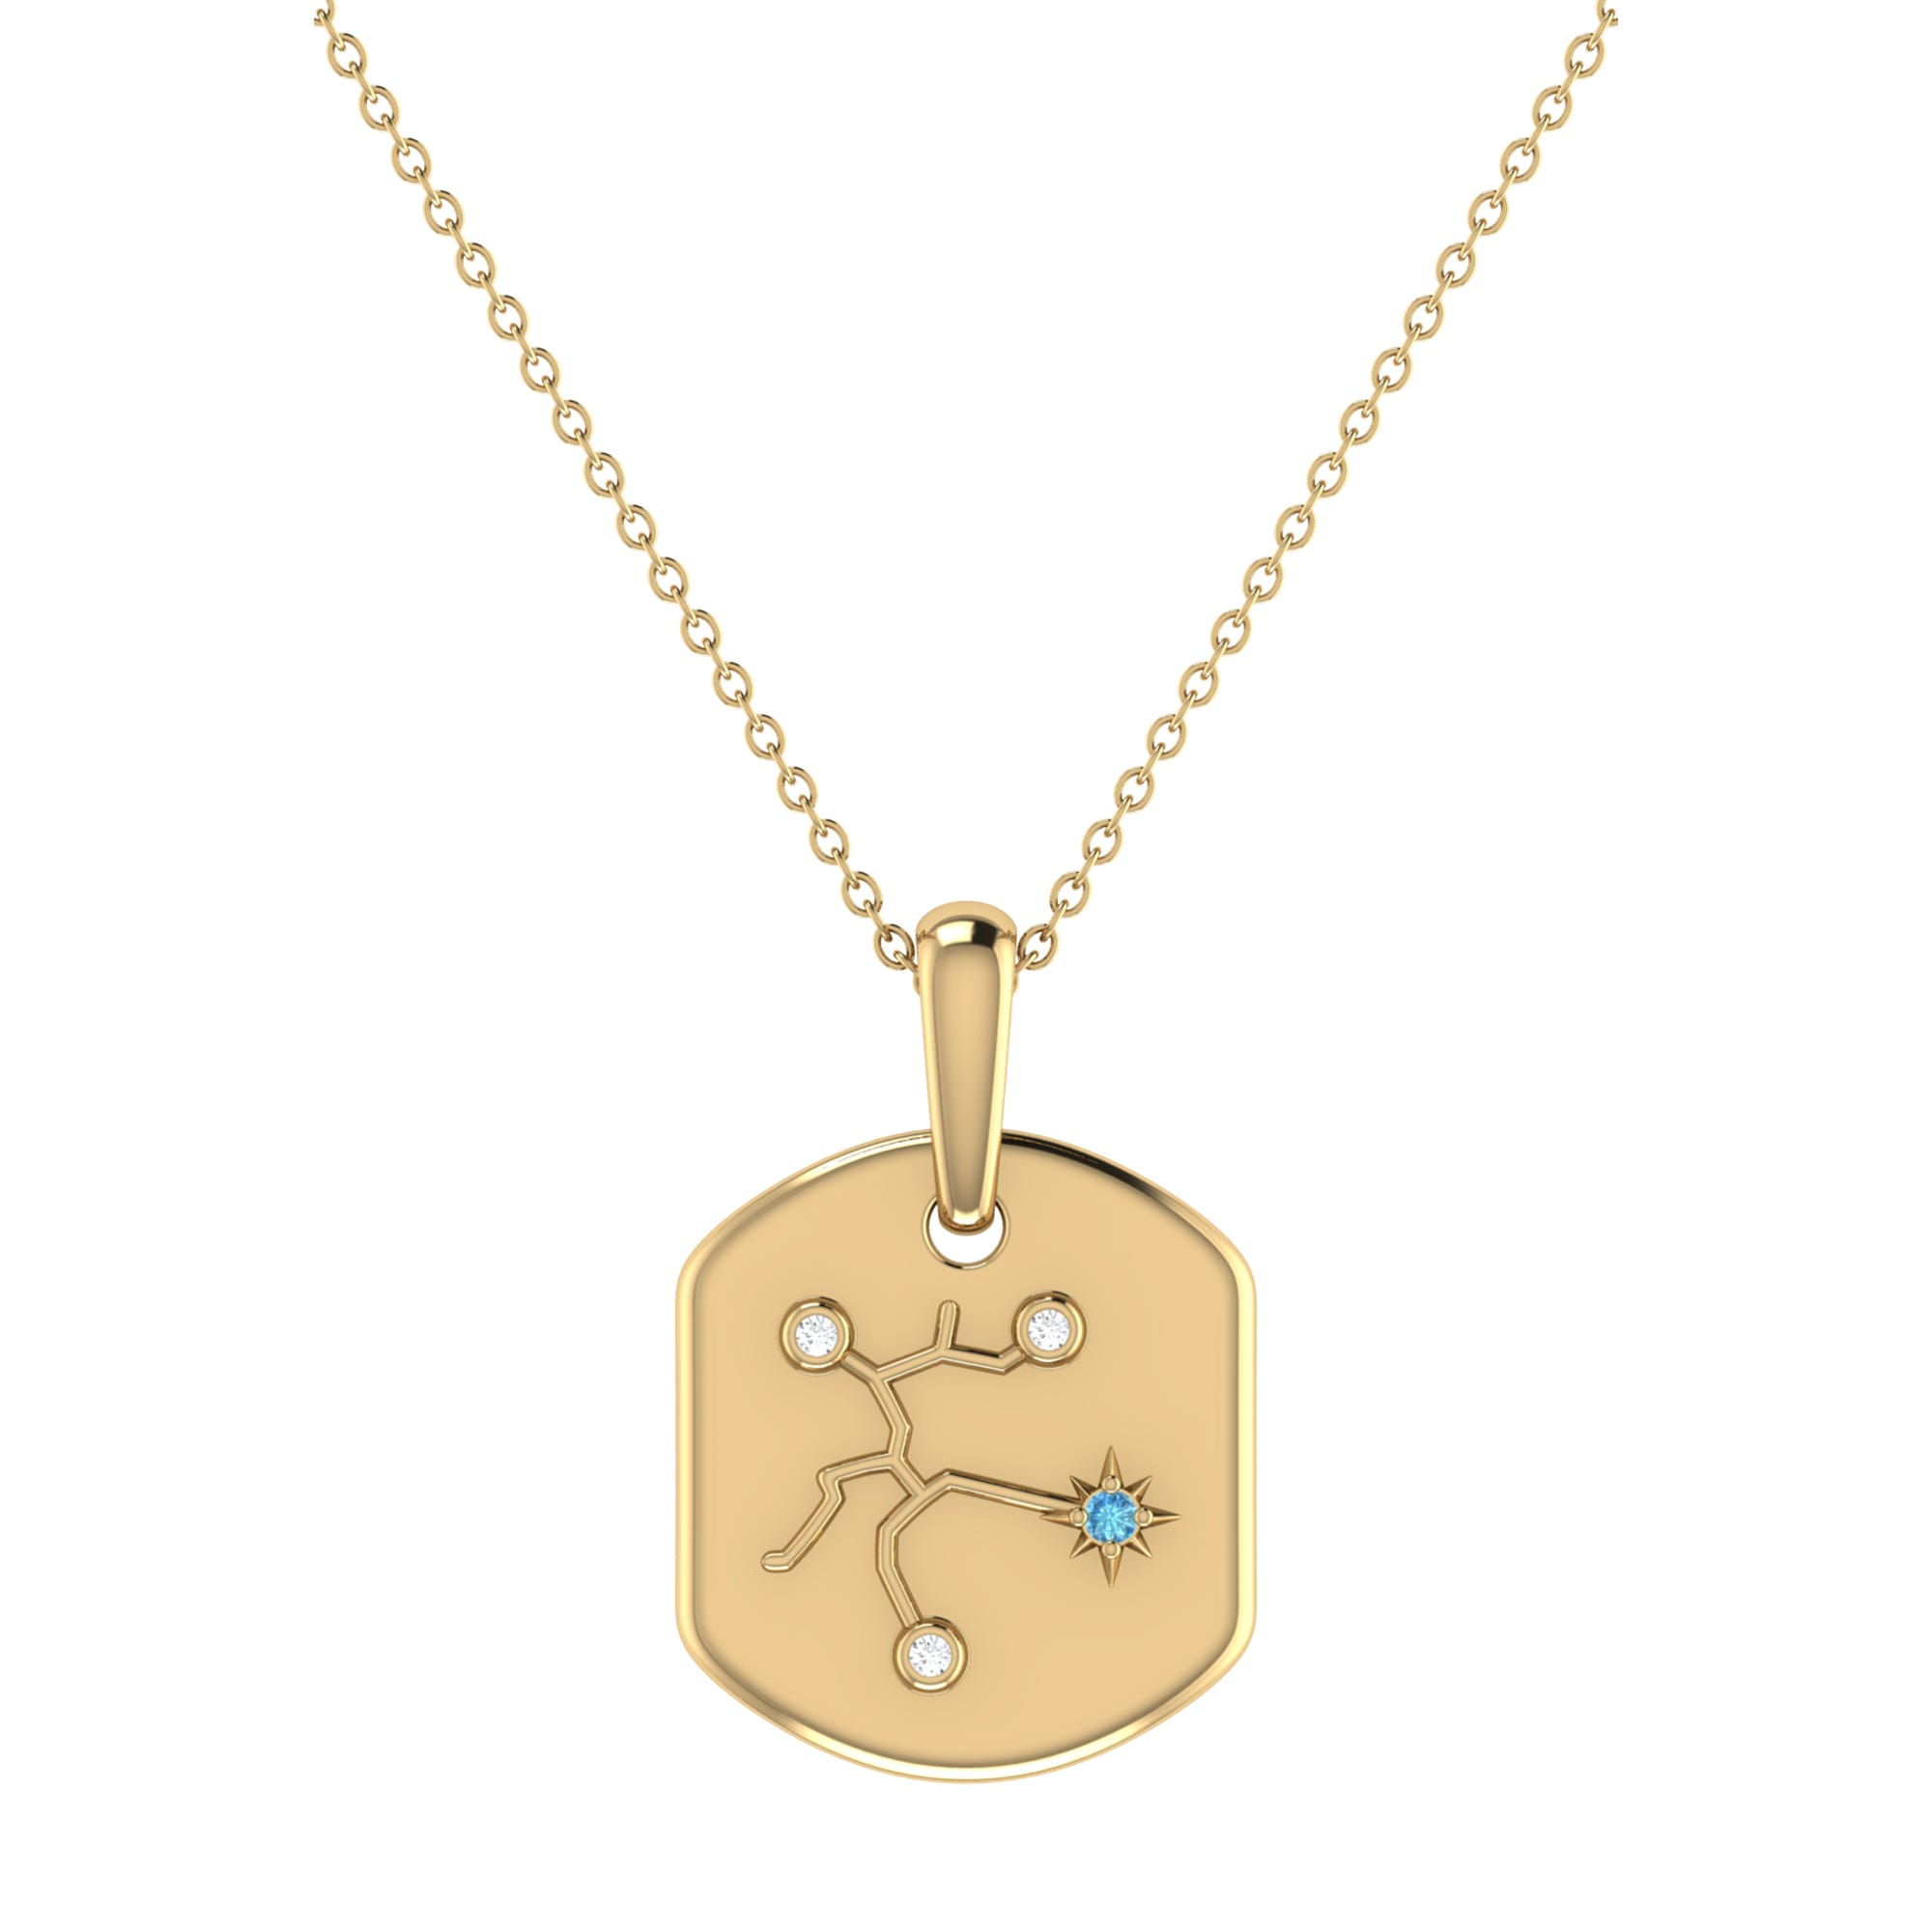 Diamond and Blue Topaz Sagittarius Constellation Tag Necklace in 14k Yellow Gold Plated Sterling Silver